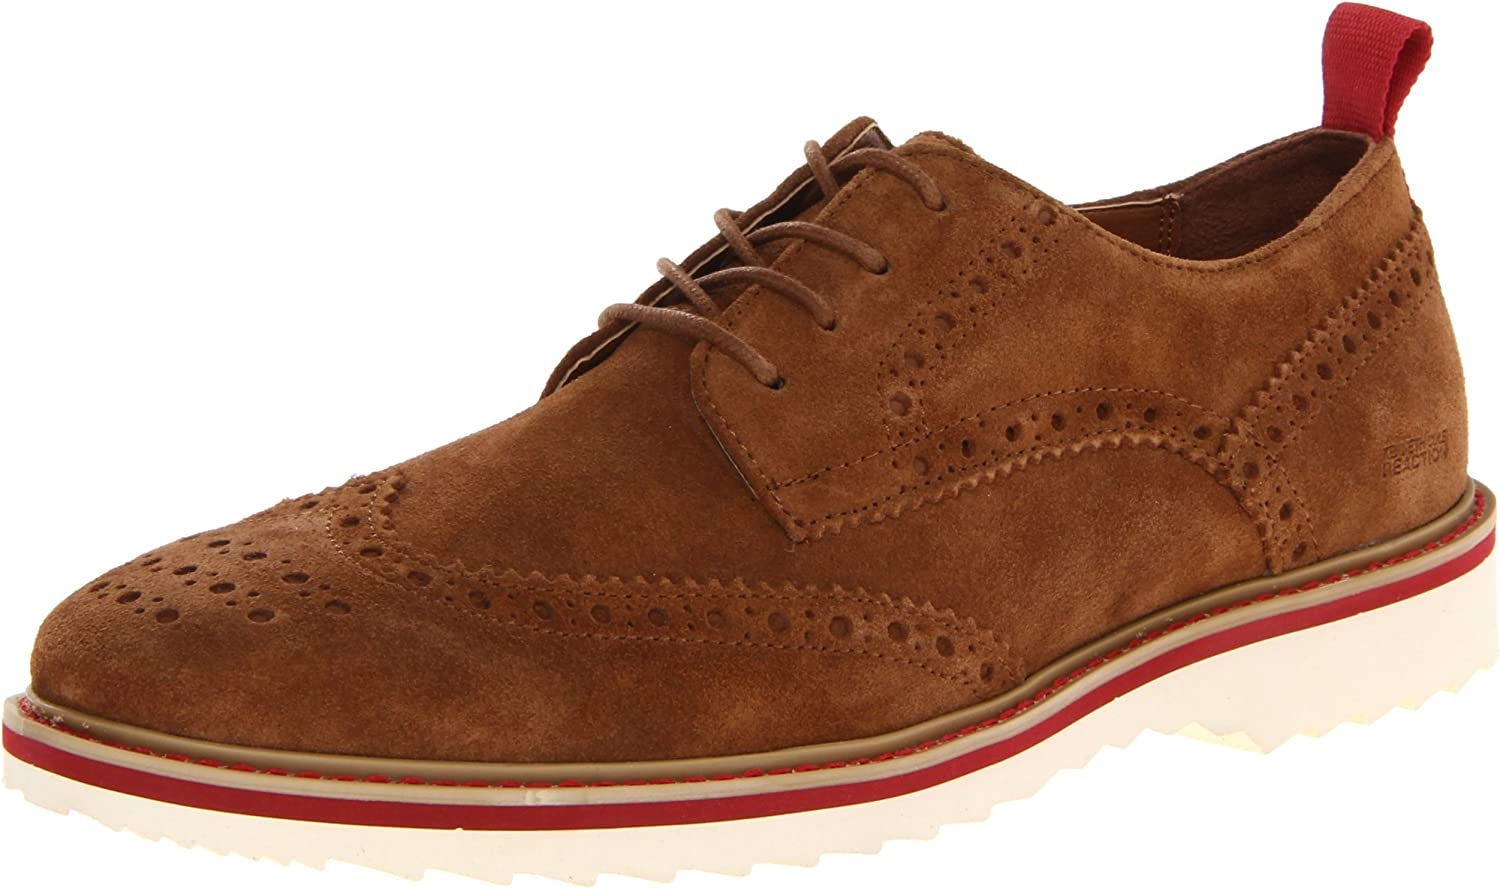 Kenneth Cole Never Too Hype SU Mens Suede Oxfords Shoes